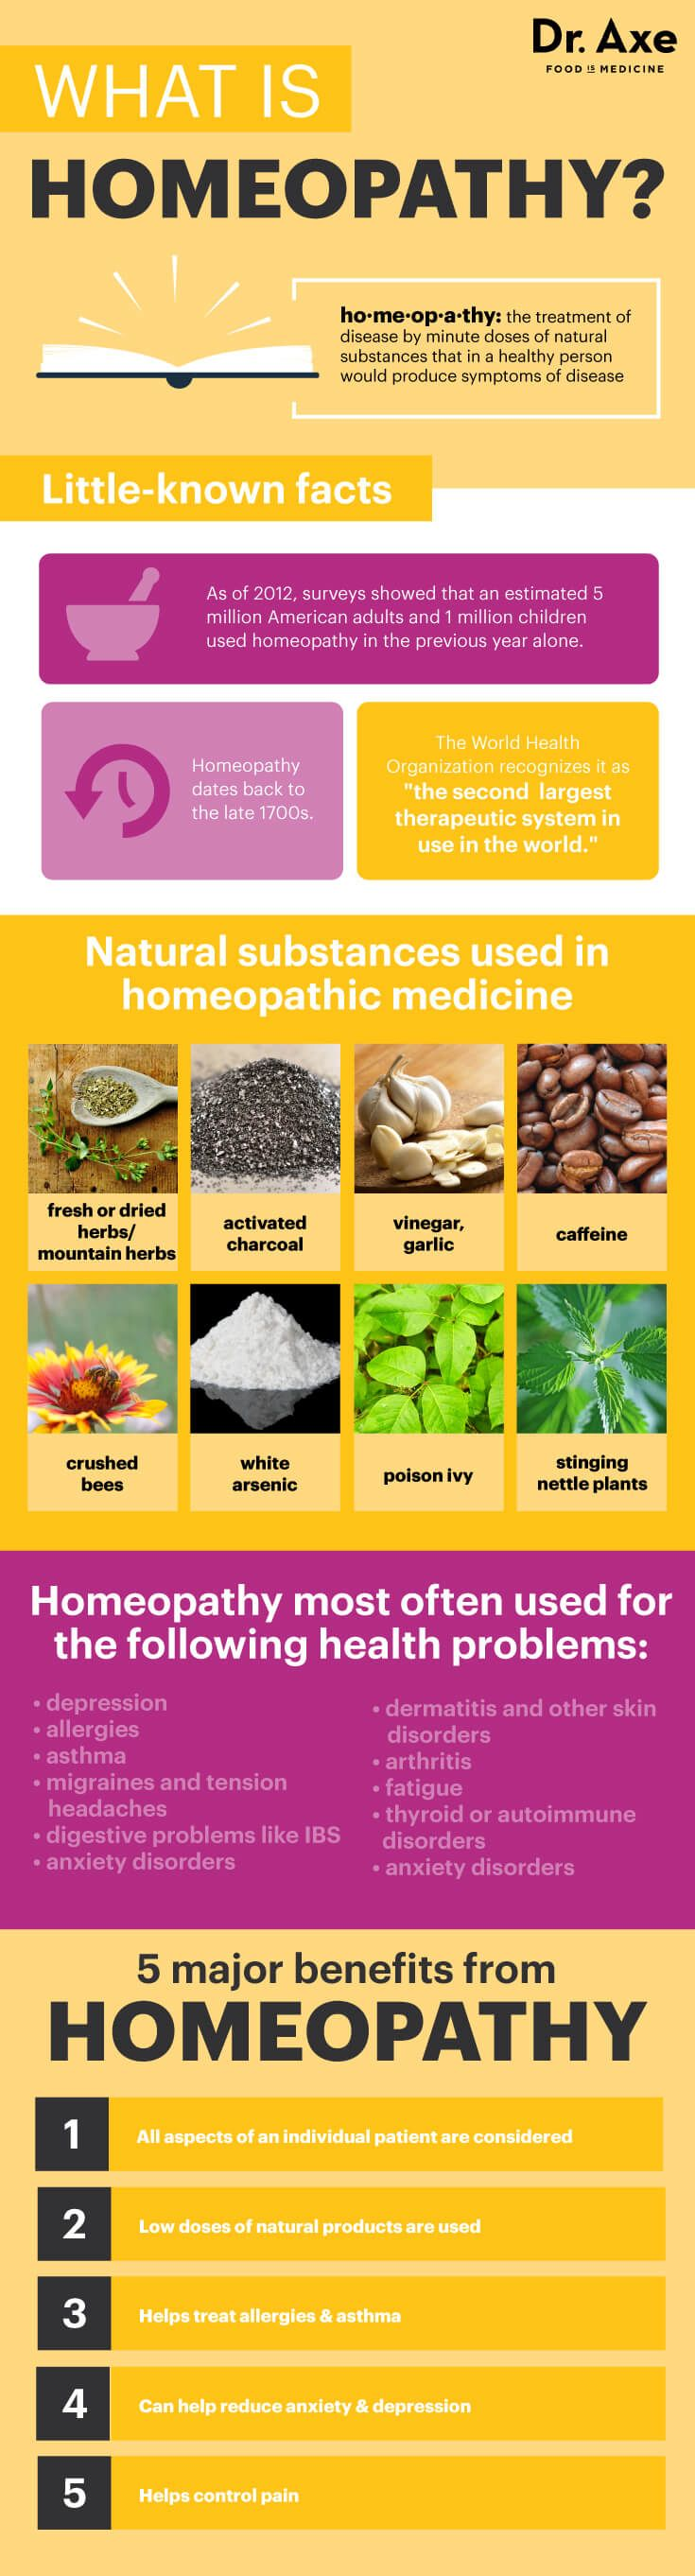 """By definition homeopathy is """"the treatment of disease by minute doses of natural substances that in a healthy person would produce symptoms of disease."""" (1) In other words, it's an alternative medicinal practice that uses the smallest possible amount of an active ingredient in order to help treat or cure a disease, even if this same ingredient can contribute to … Read More"""